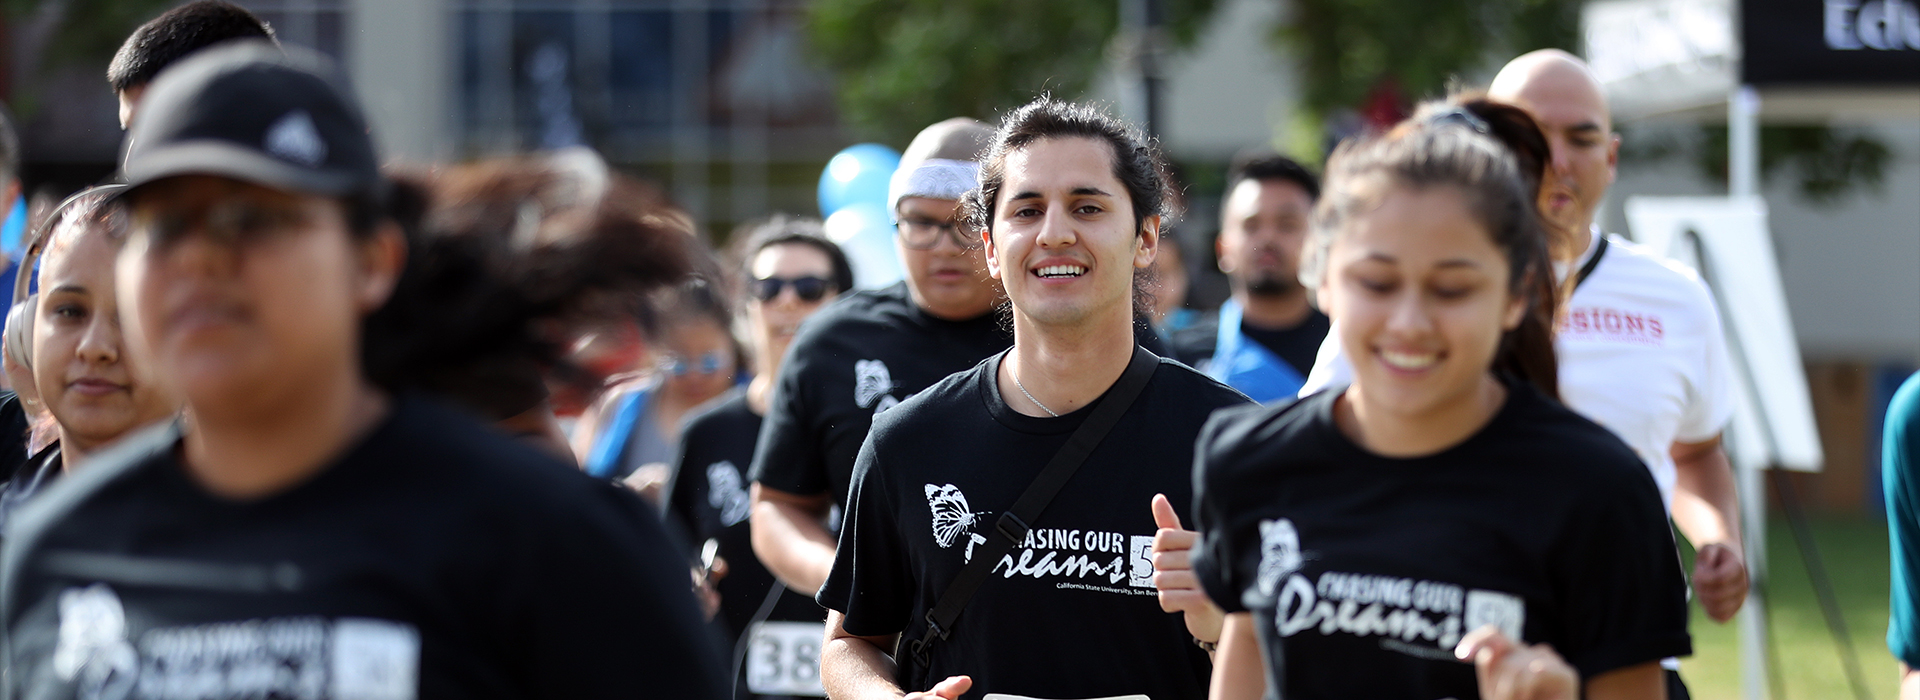 5K run/walk raises scholarship funds for CSUSB Dreamer students